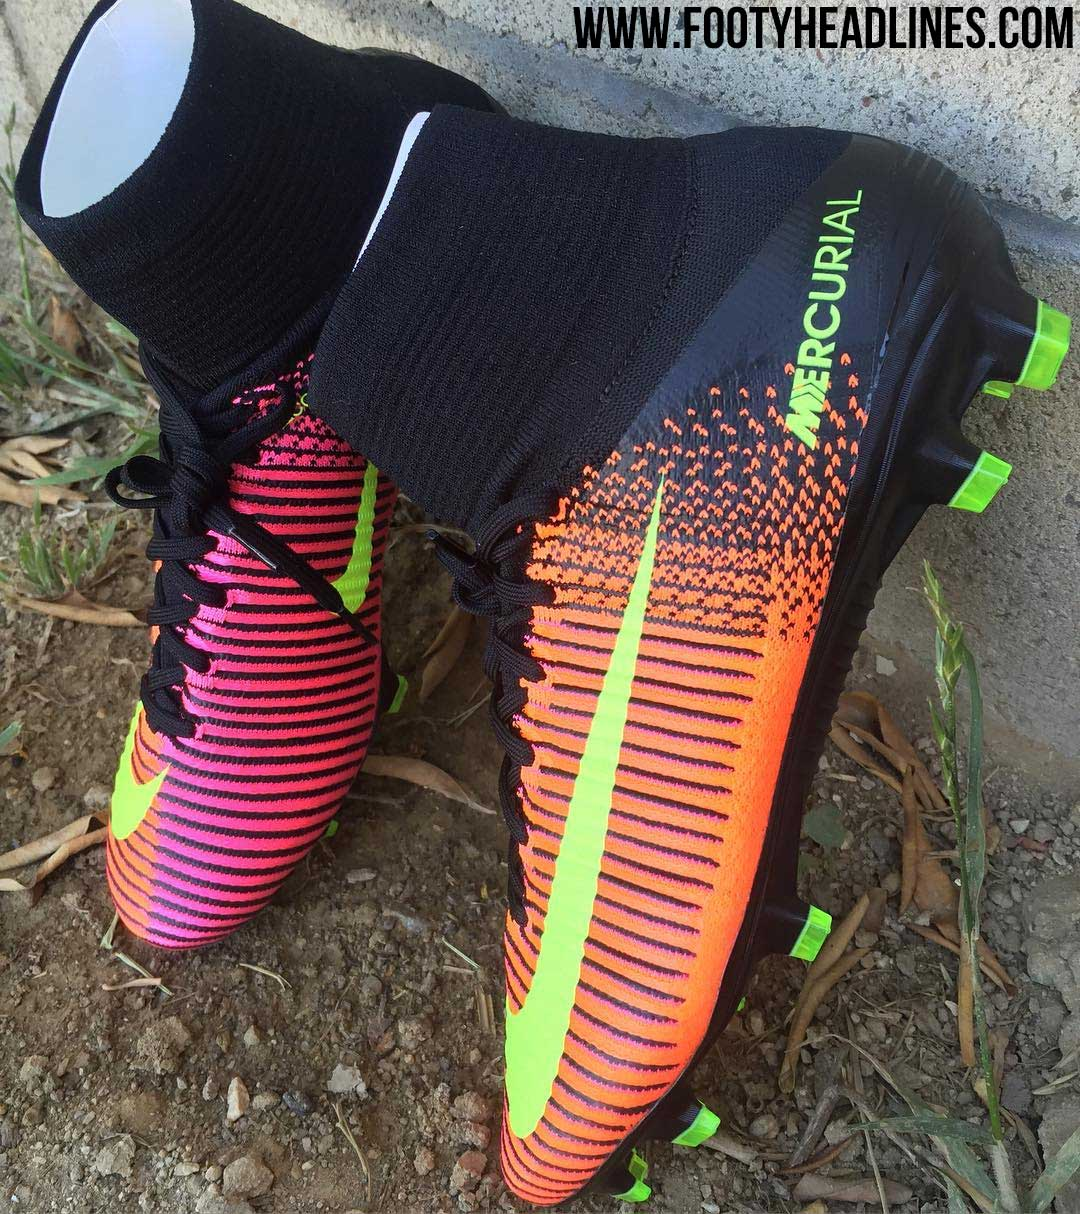 The new Mercurial s anatomical plate is aligned with the natural contours  of the foot 885702ae87b01